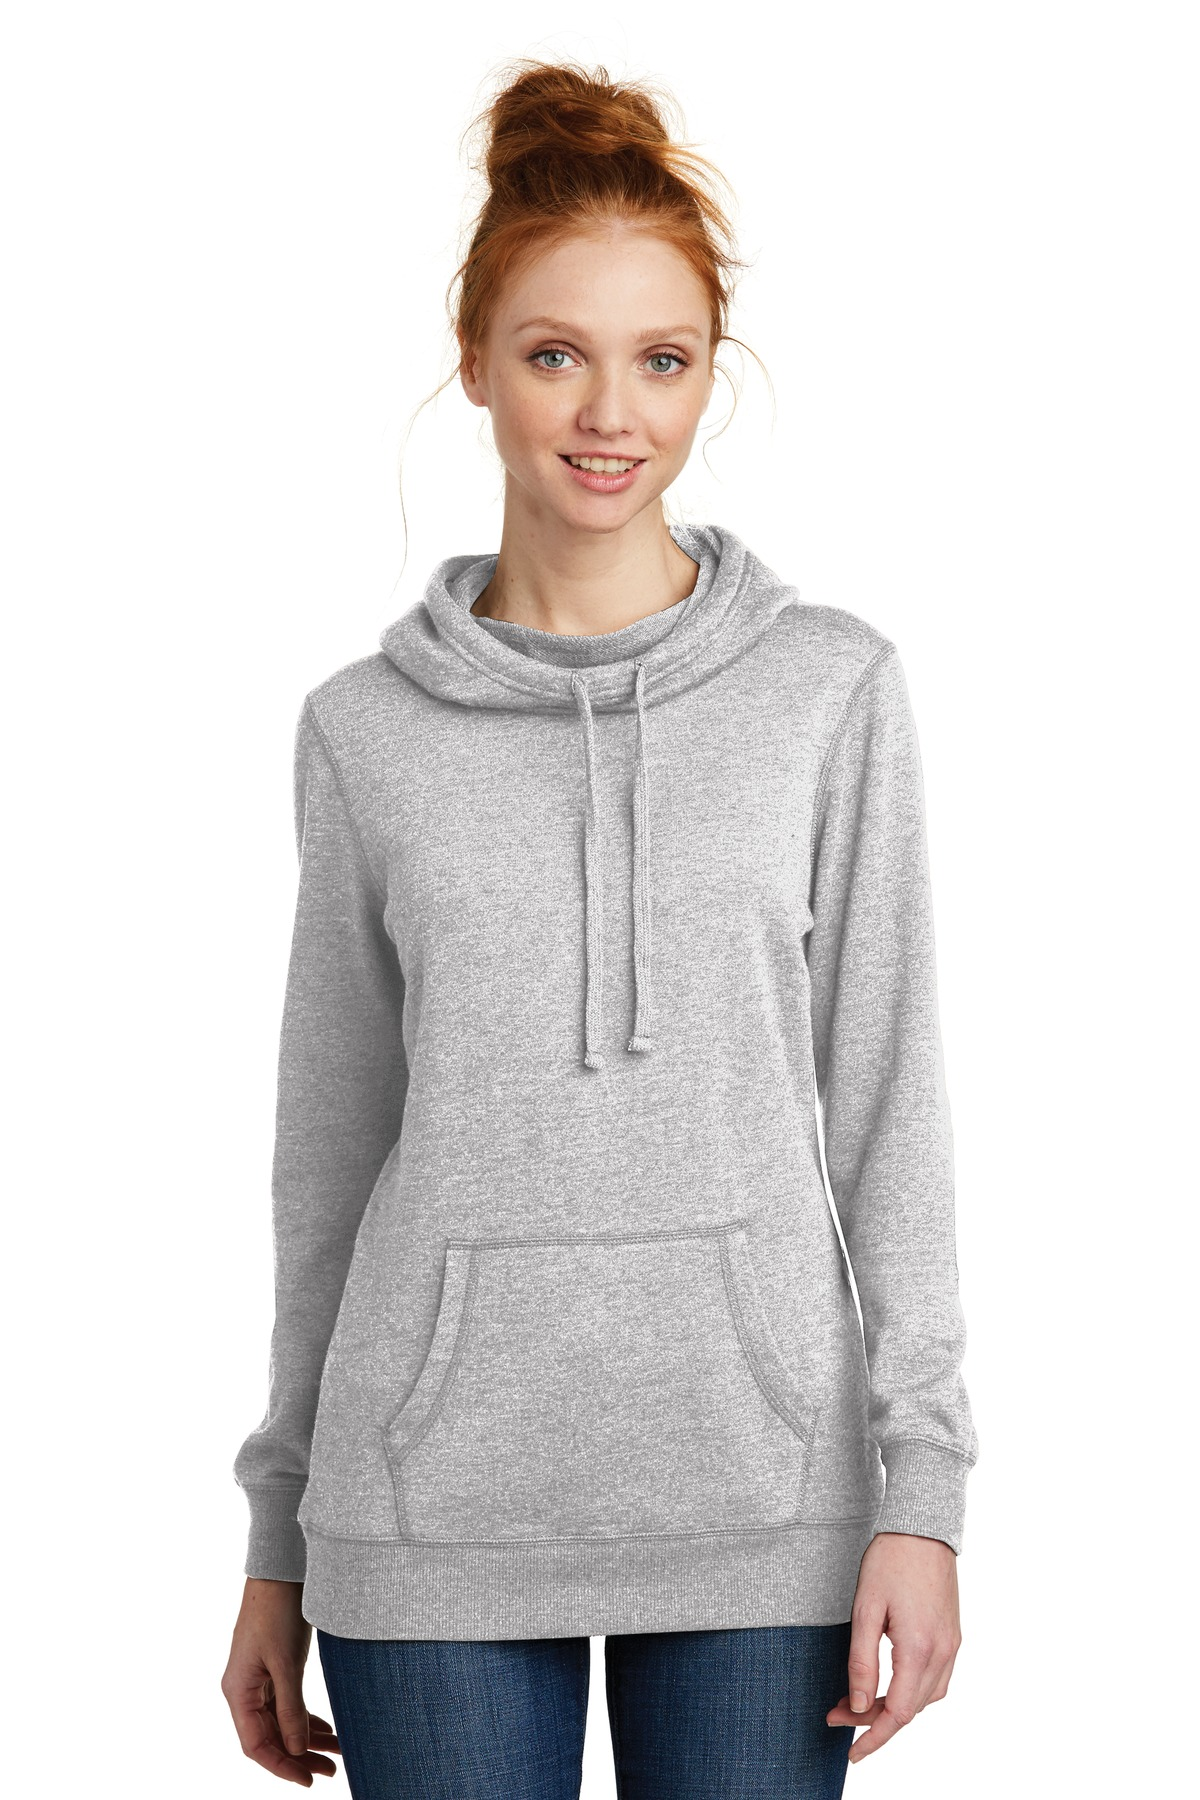 District  ®  Women's Lightweight Fleece Hoodie. DM493 - Heathered Grey